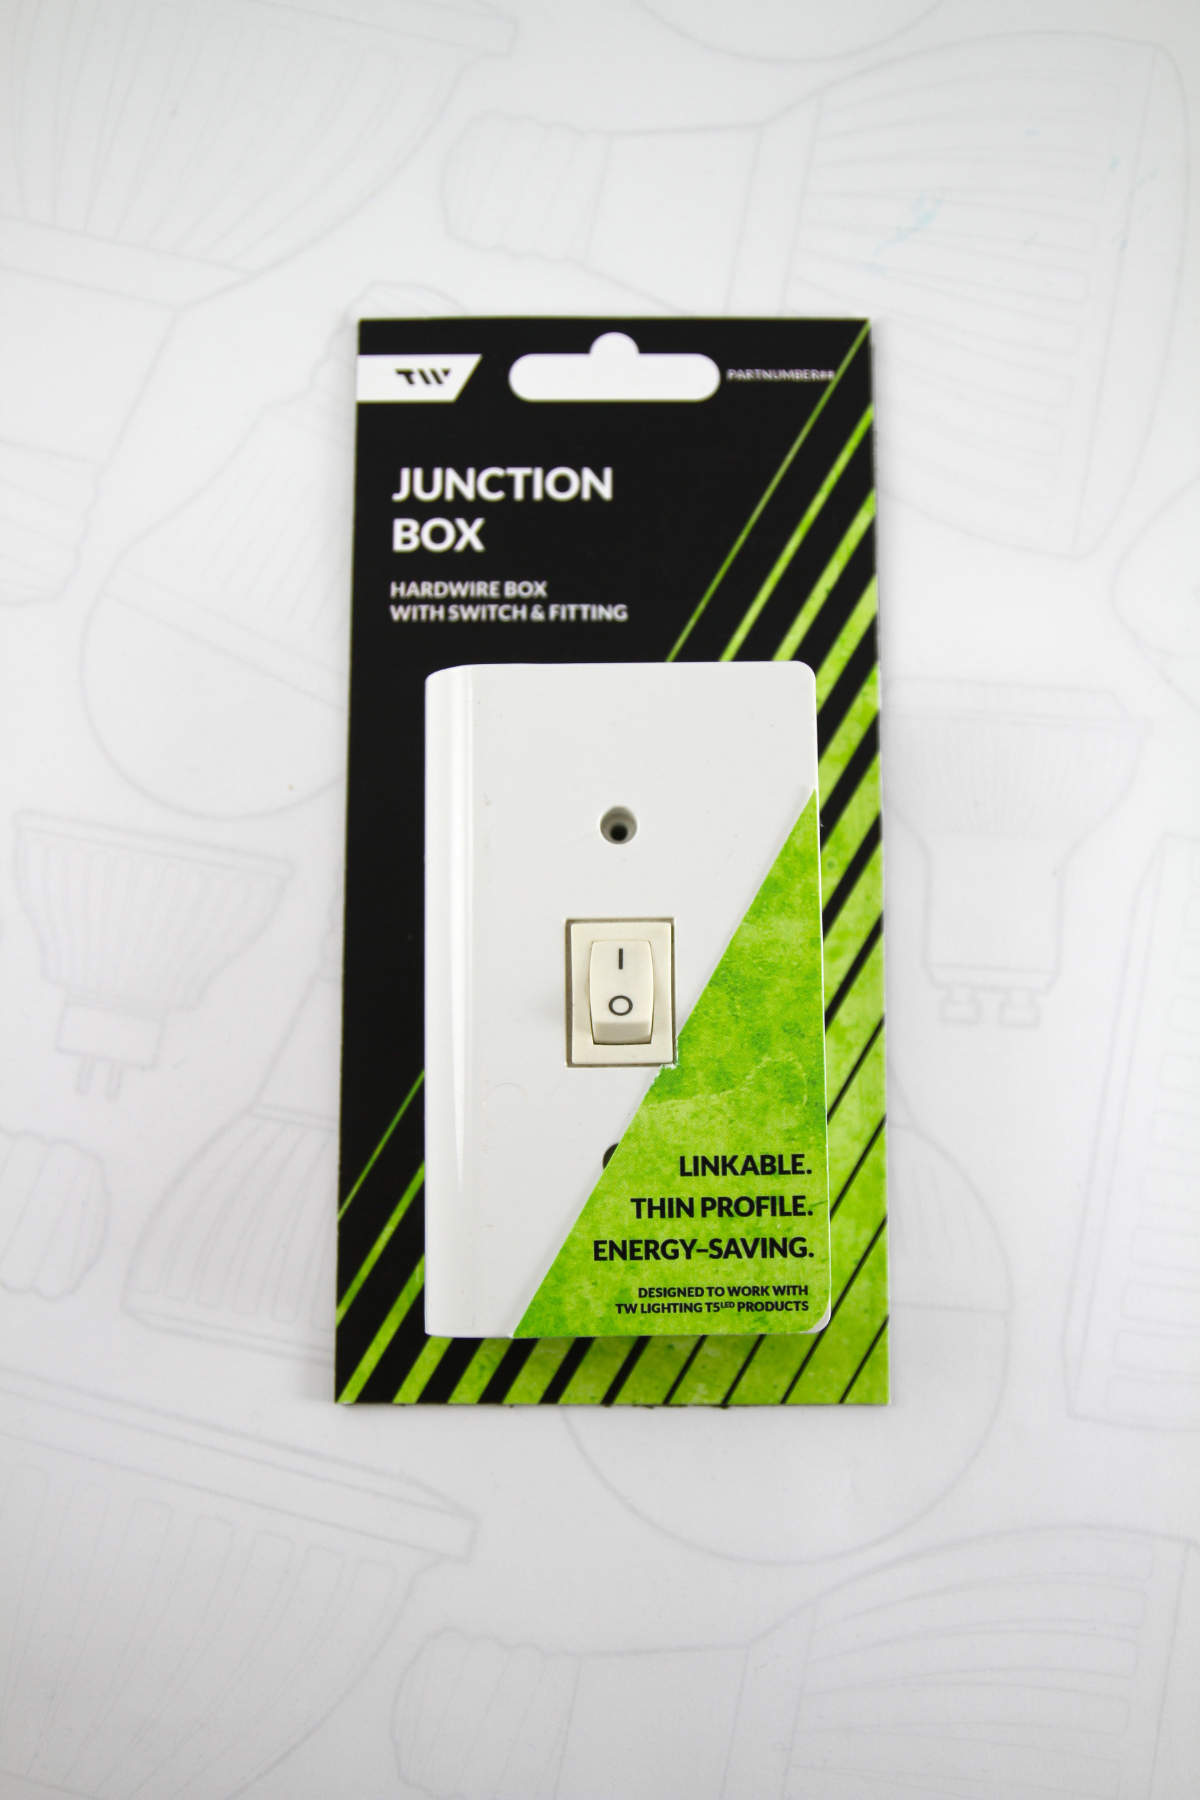 A linkable junction box and its packaging.